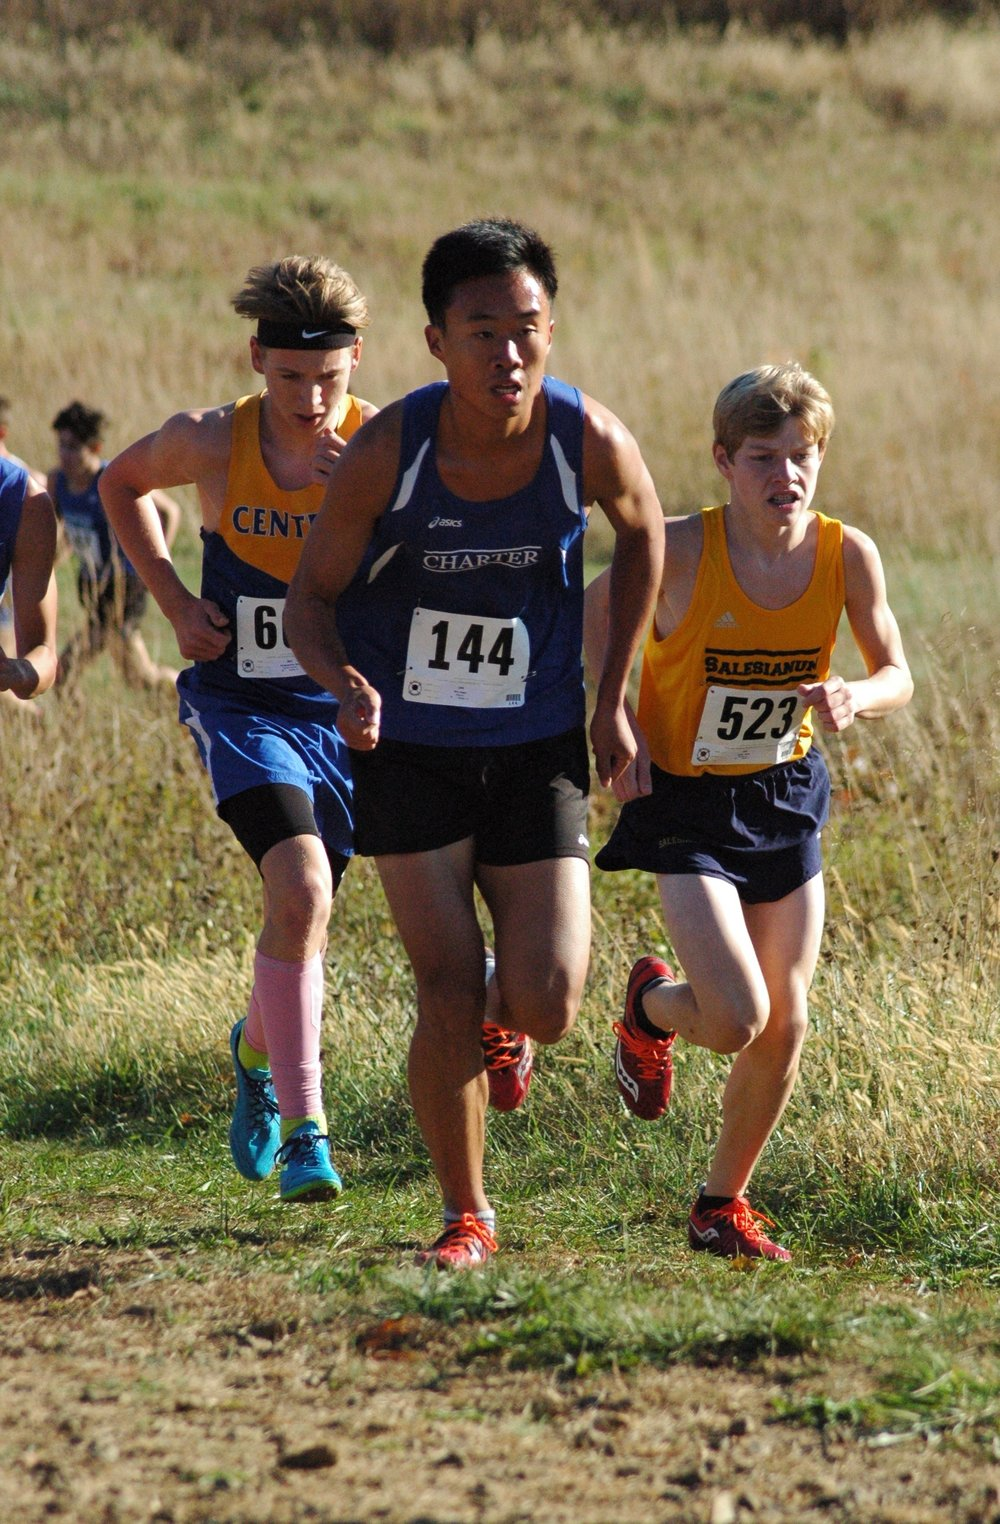 Senior Logan Kim (in Charter uniform) charges up the dreaded Maintenance Hill with ease, passing a few runners along the way.  Photo by Joe Hackman  .